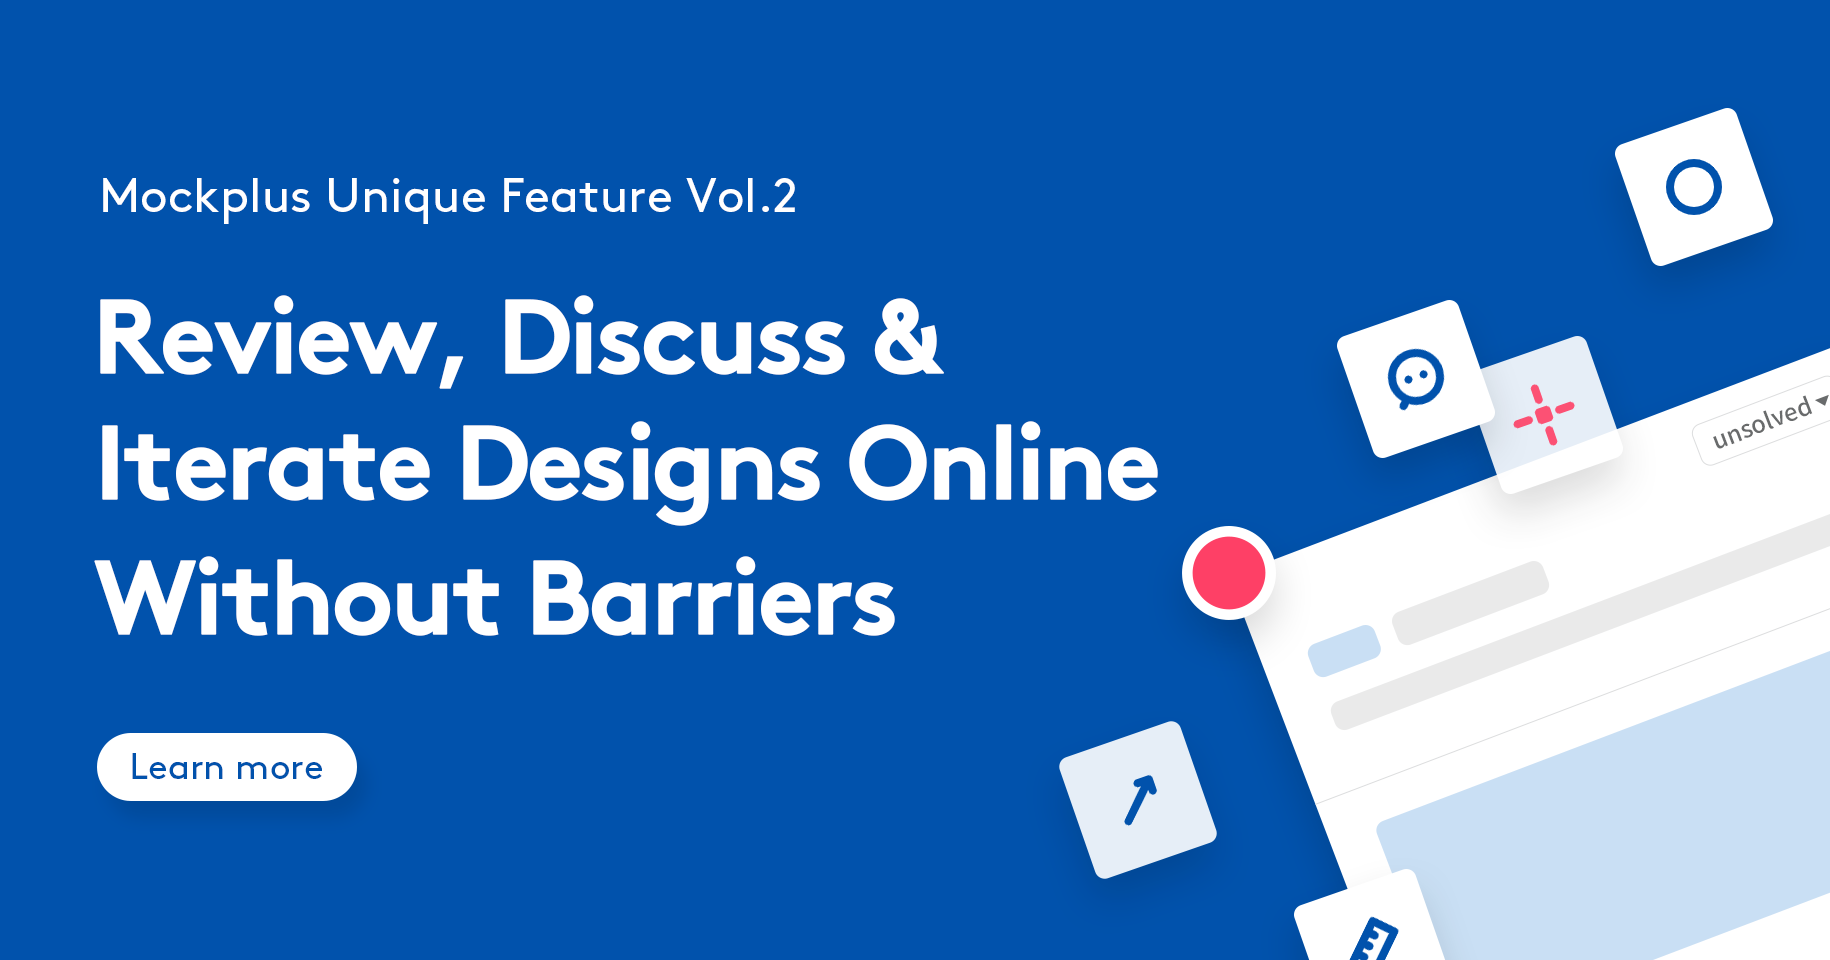 How To Comment & Discuss Designs Without Barriers Using Mockplus Cloud